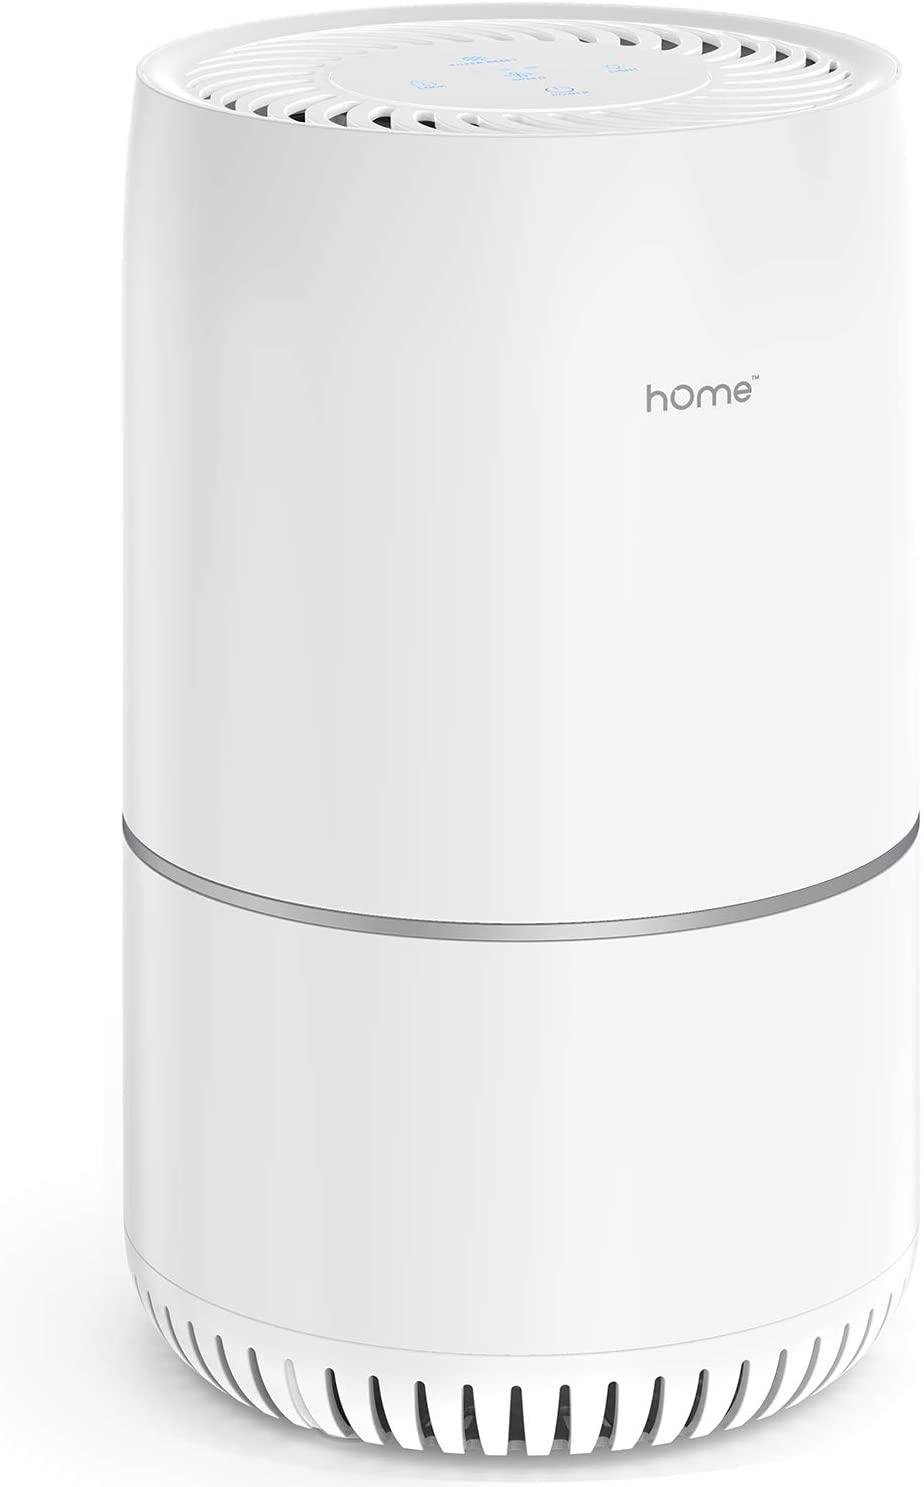 hOmeLabs True HEPA H13 Filter Air Purifier